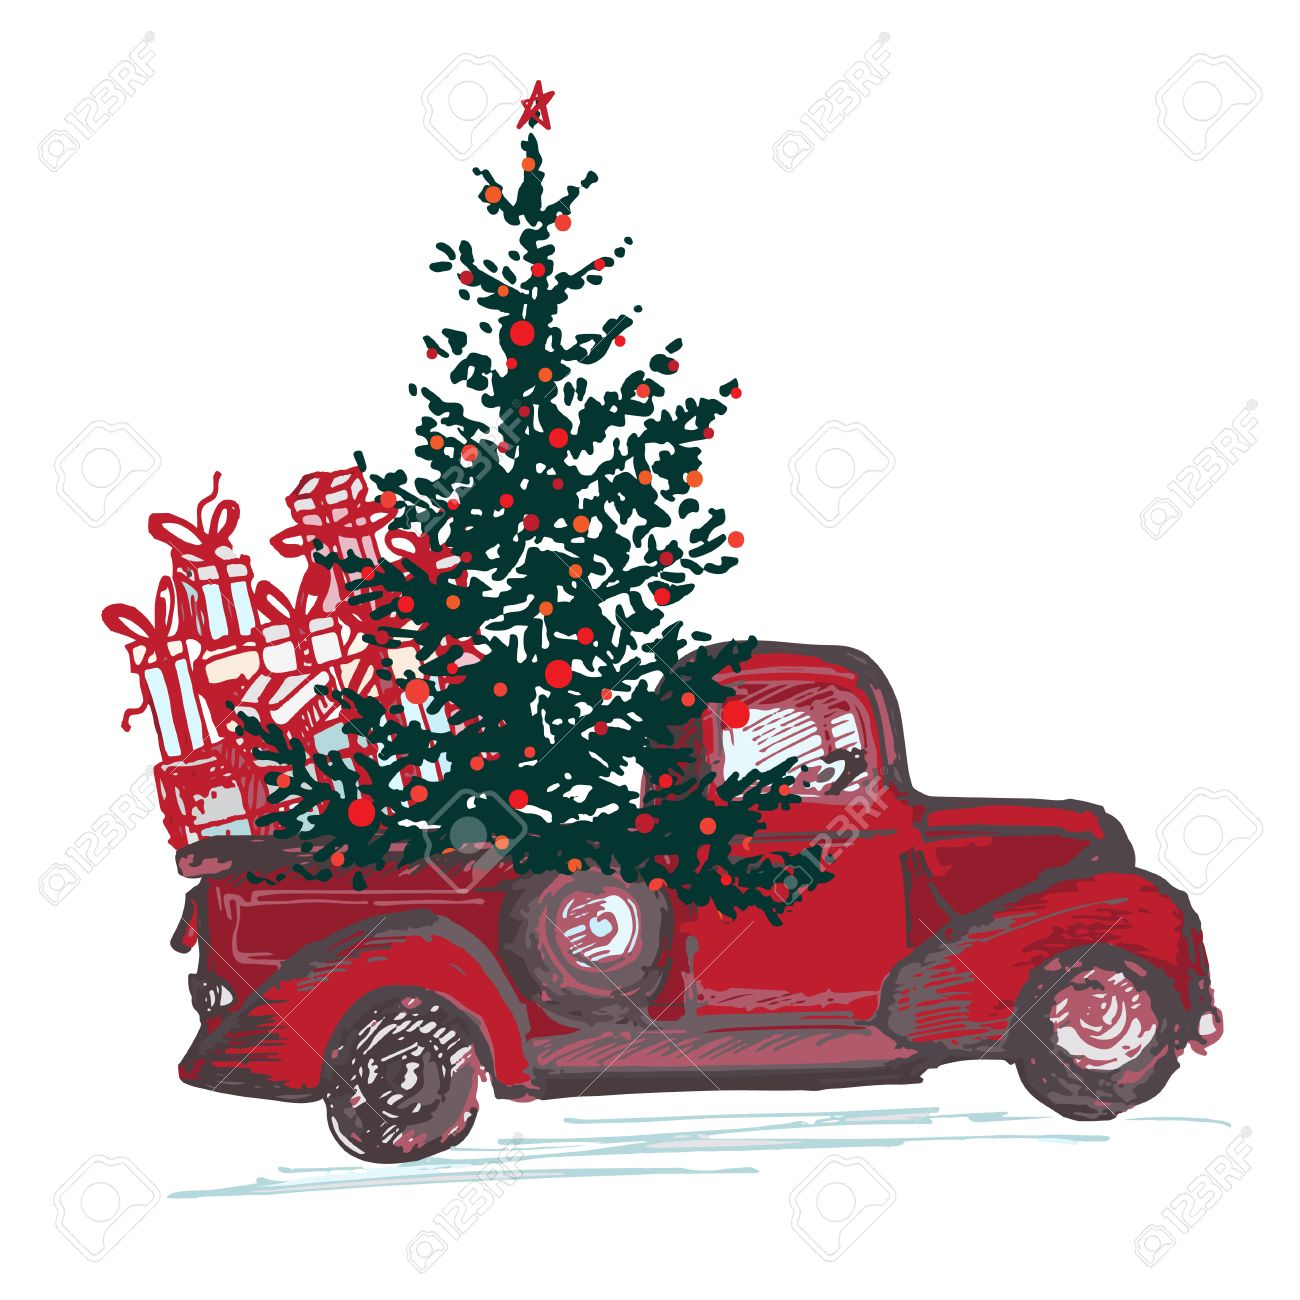 Christmas Red Truck.Festive New Year 2018 Card Red Truck With Fir Tree Decorated